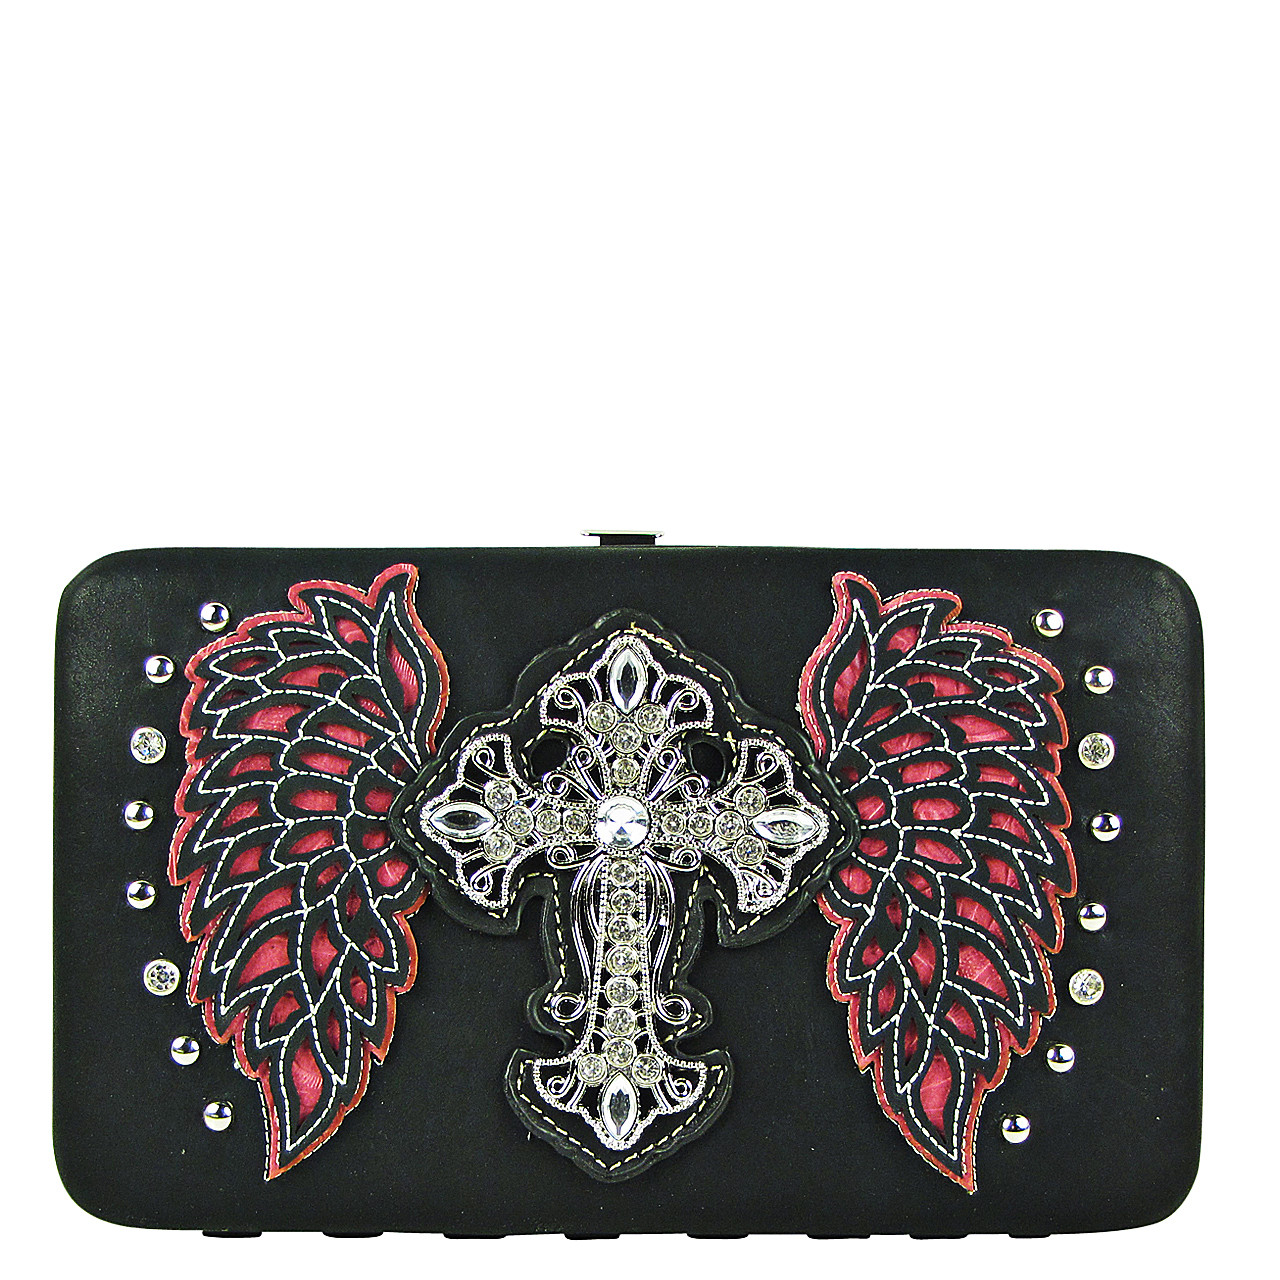 HOT PINK STUDDED RHINESTONE CROSS WITH STICHED WINGS LOOK FLAT THICK WALLET FW2-04128HPK